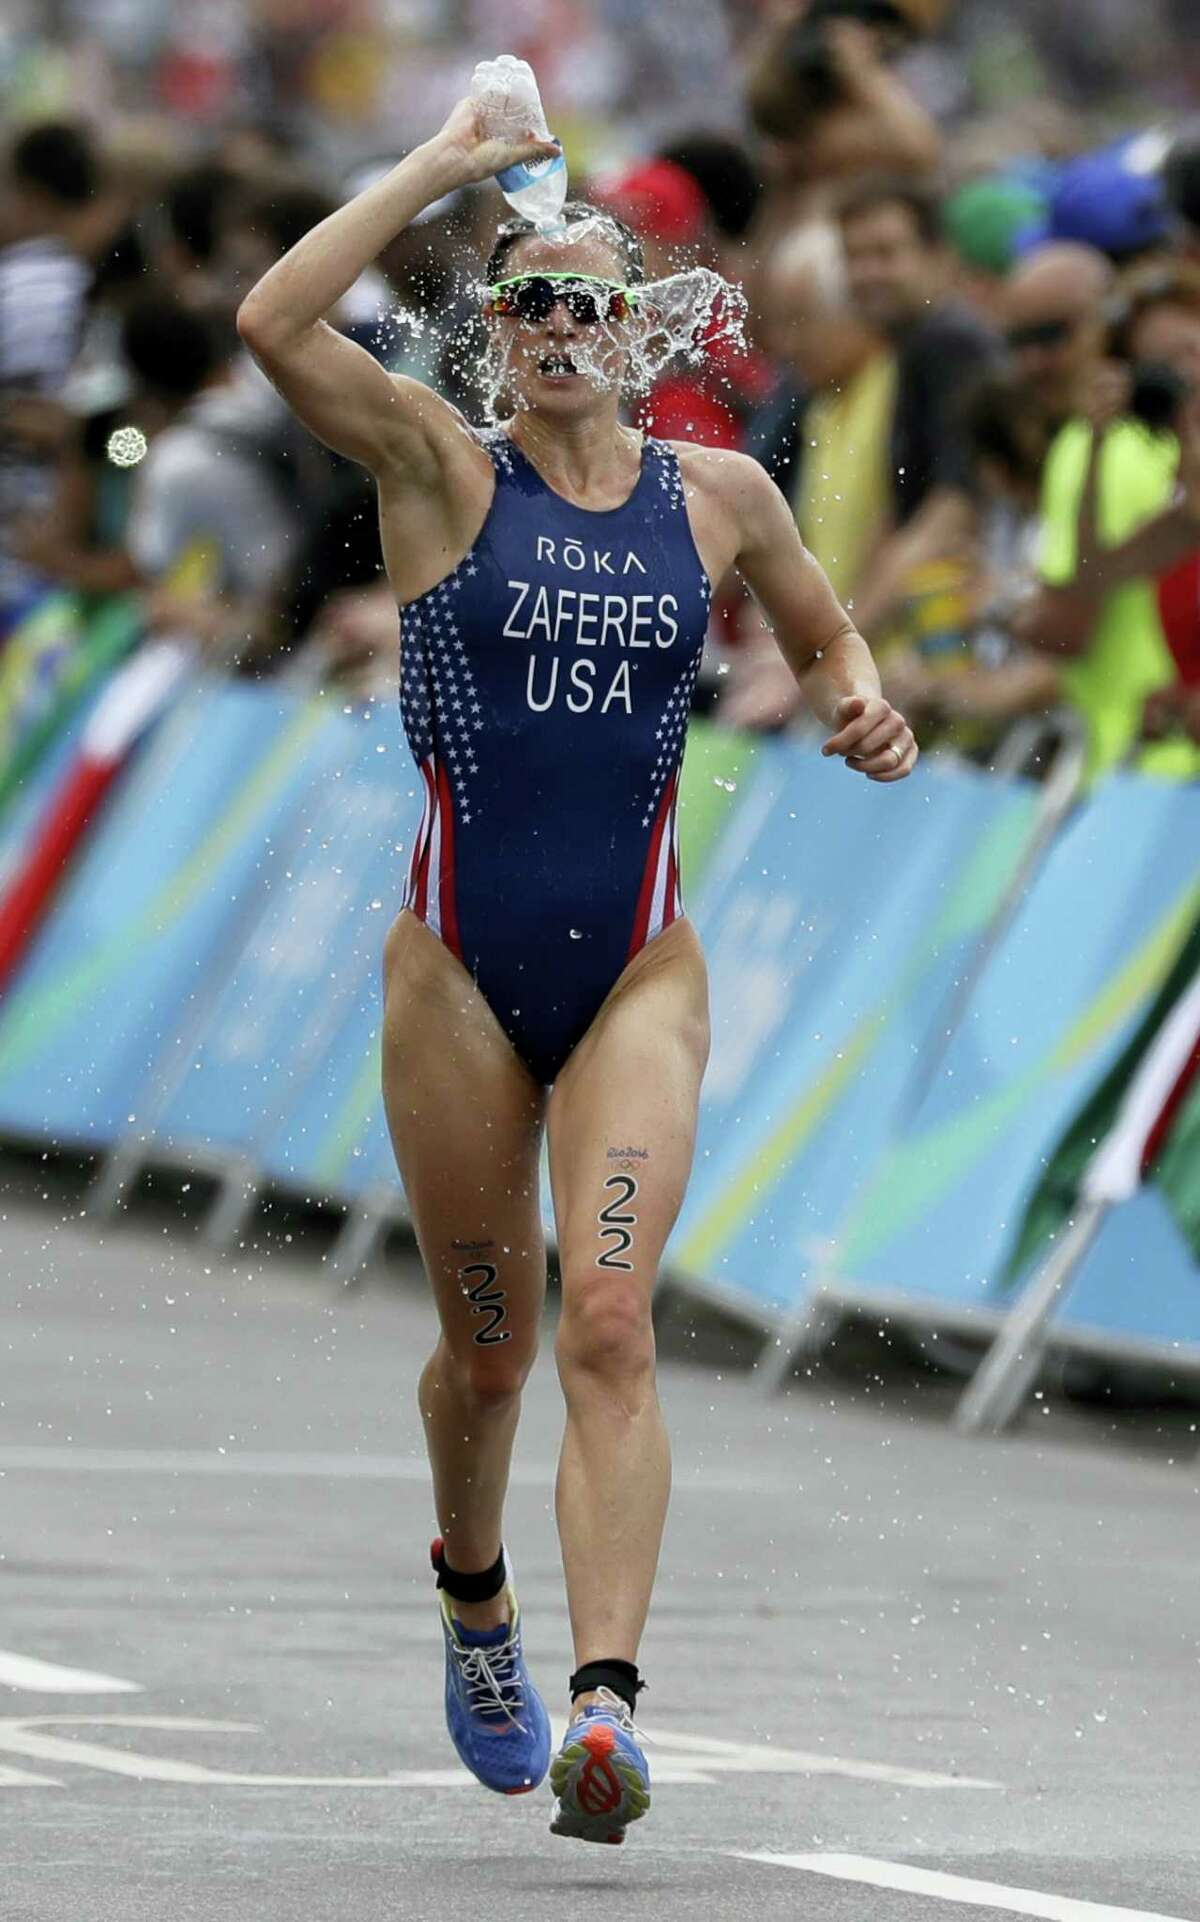 Katie Zaferes of the United States douses herself with water during the women's triathlon competition of the 2016 Summer Olympics in Rio de Janeiro, Brazil, Saturday, Aug. 20, 2016.